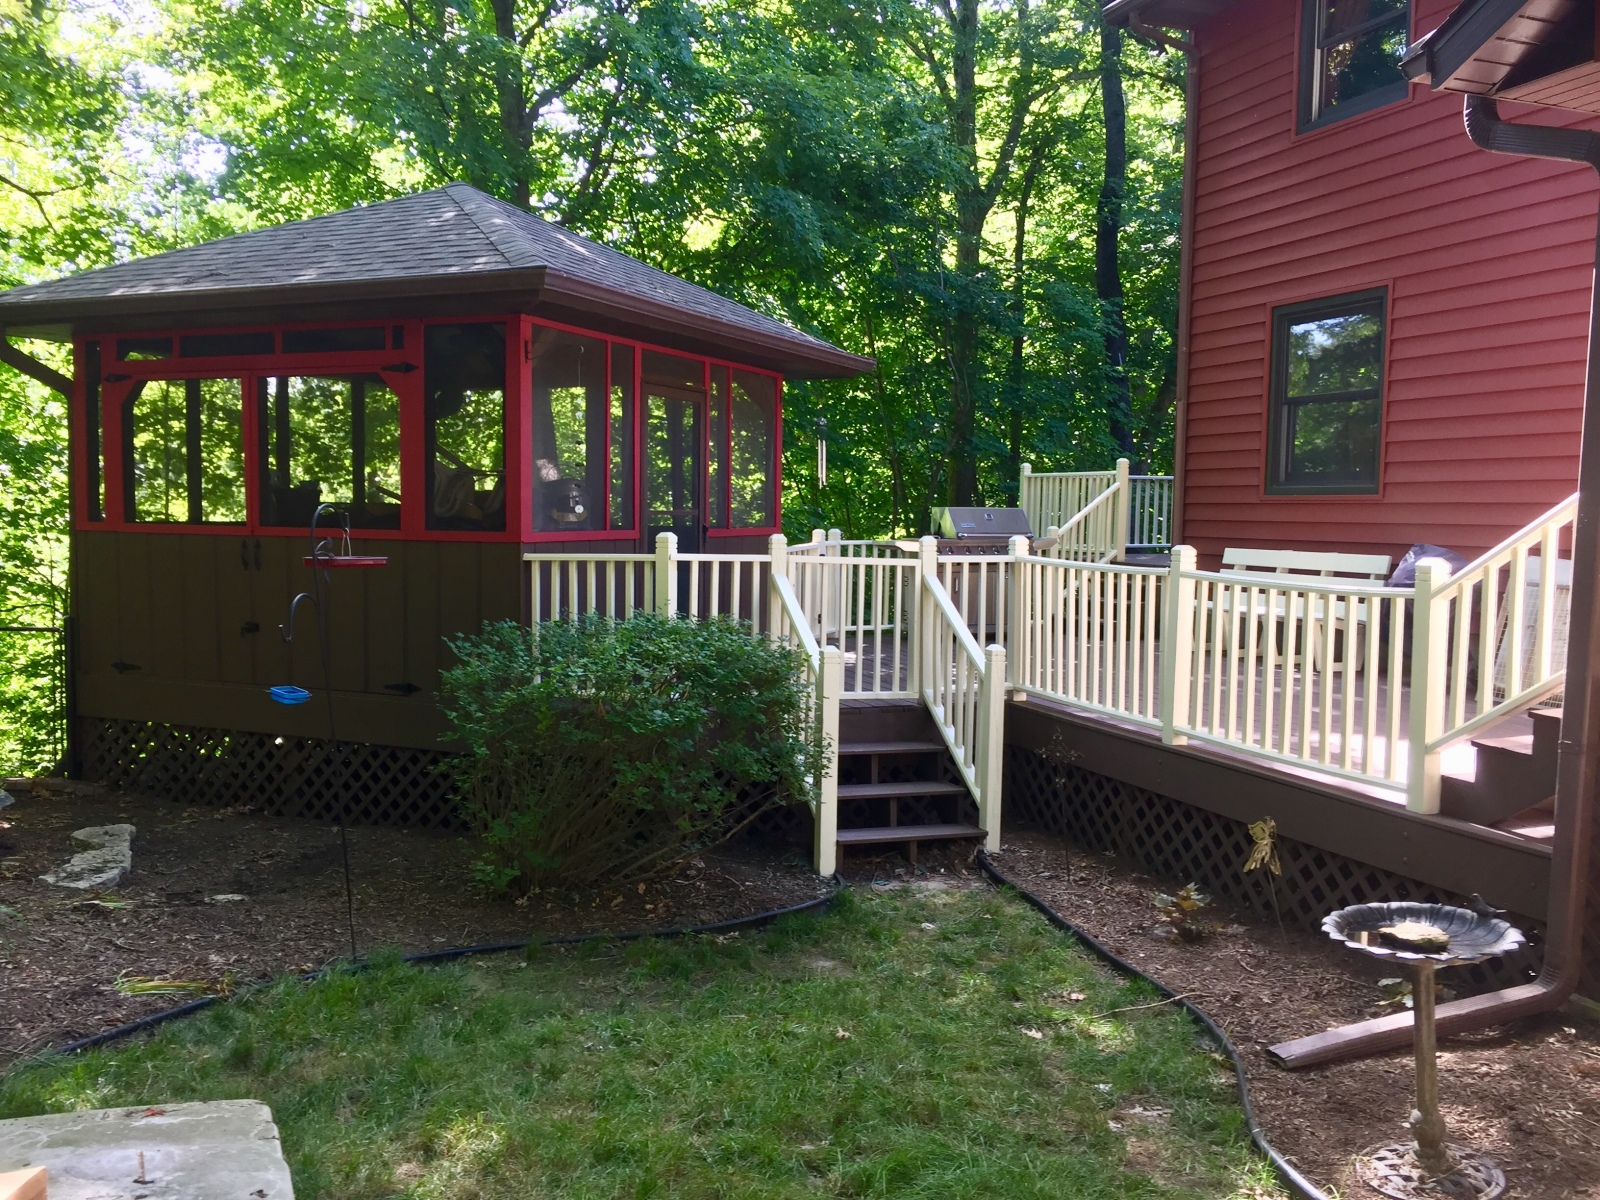 After Painting Railings, Decks and Hot Tub Area